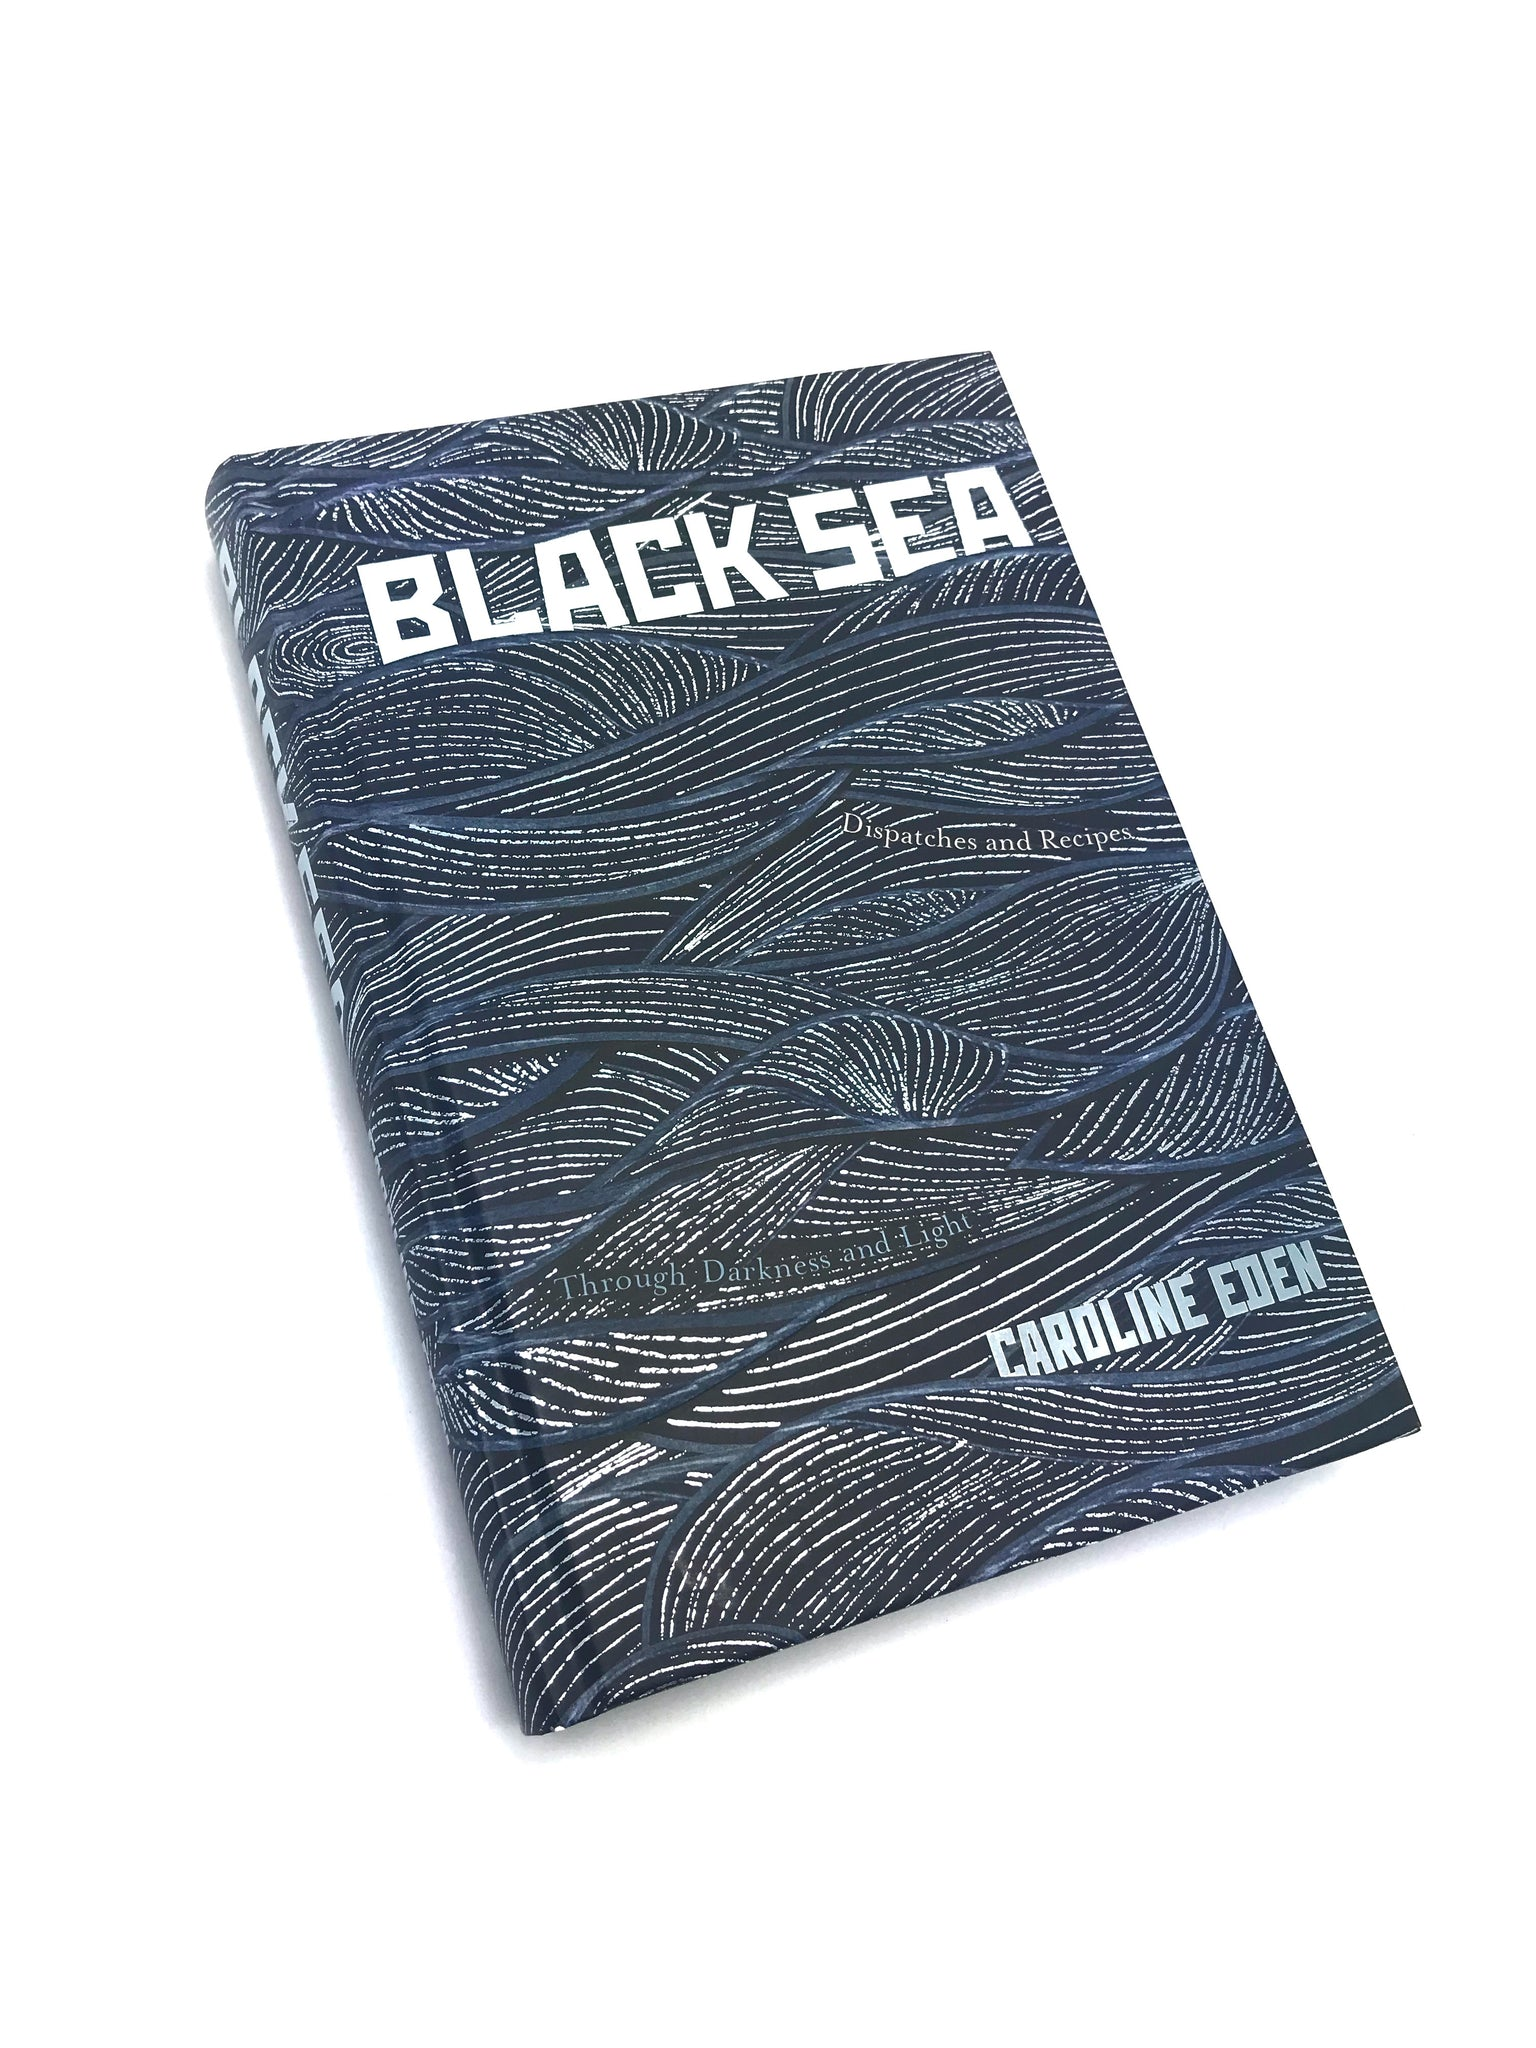 Black Sea Cookbook